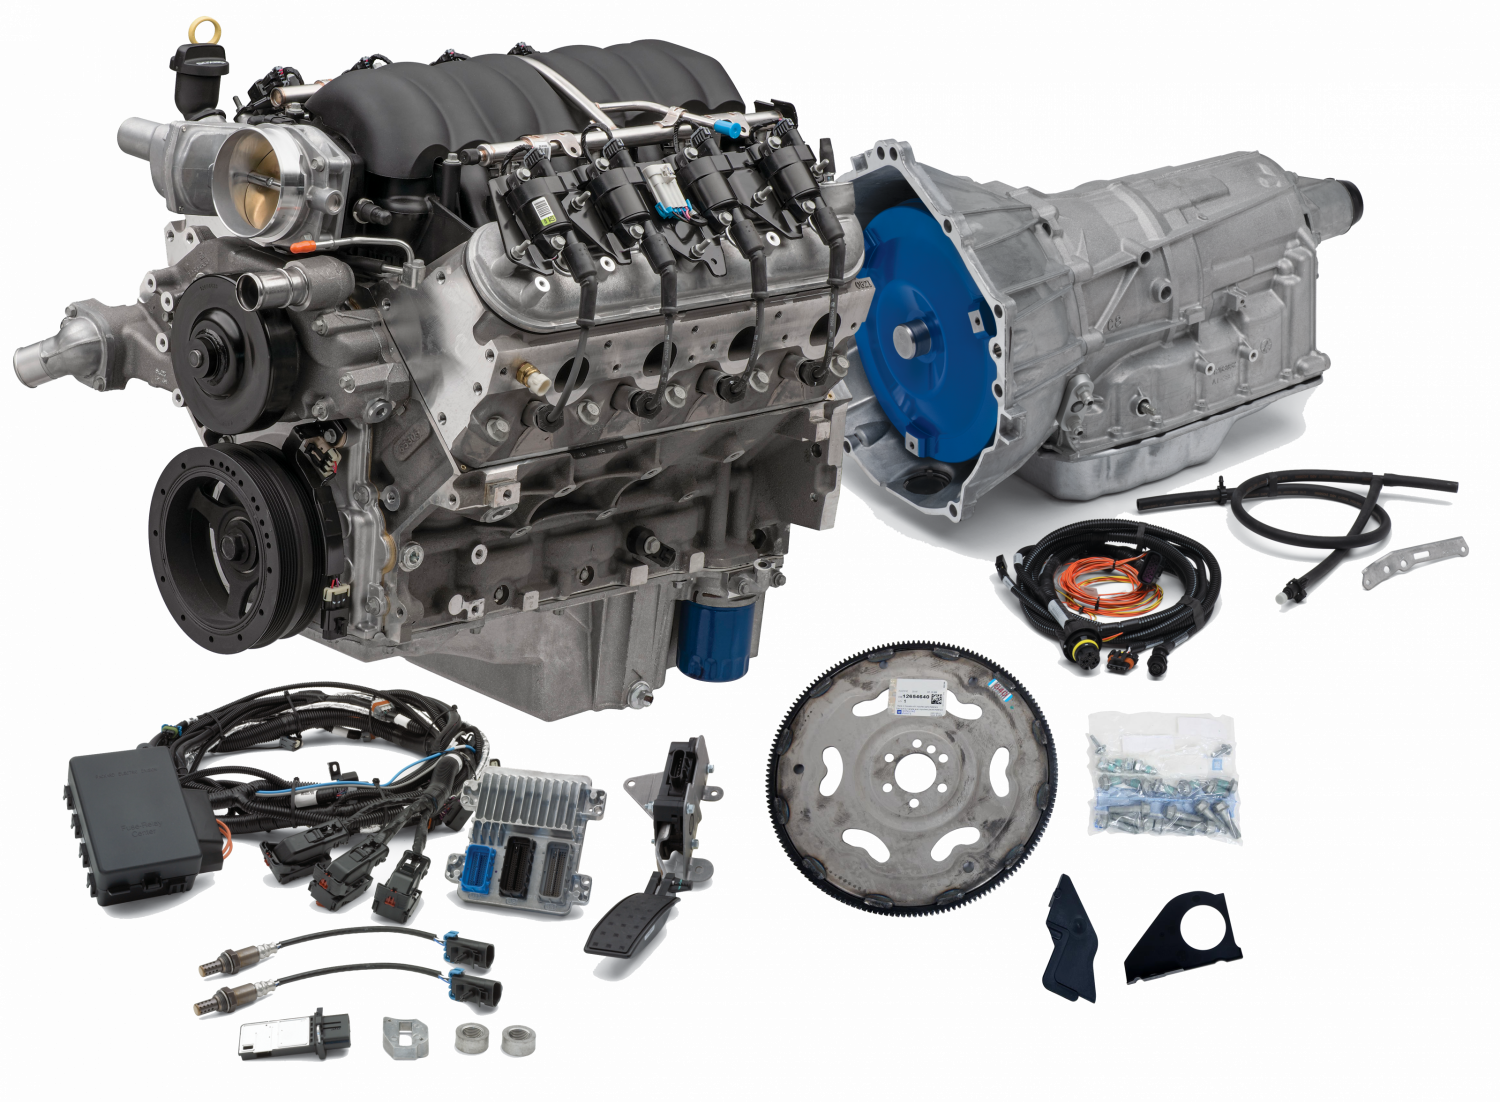 CPSLS3764806L80E - Chevrolet Performance LS3 495HP Engine with 6L80E  6-Speed Auto Transmission Combo Package | Chevrolet L99 Engine Diagram |  | Pace Performance